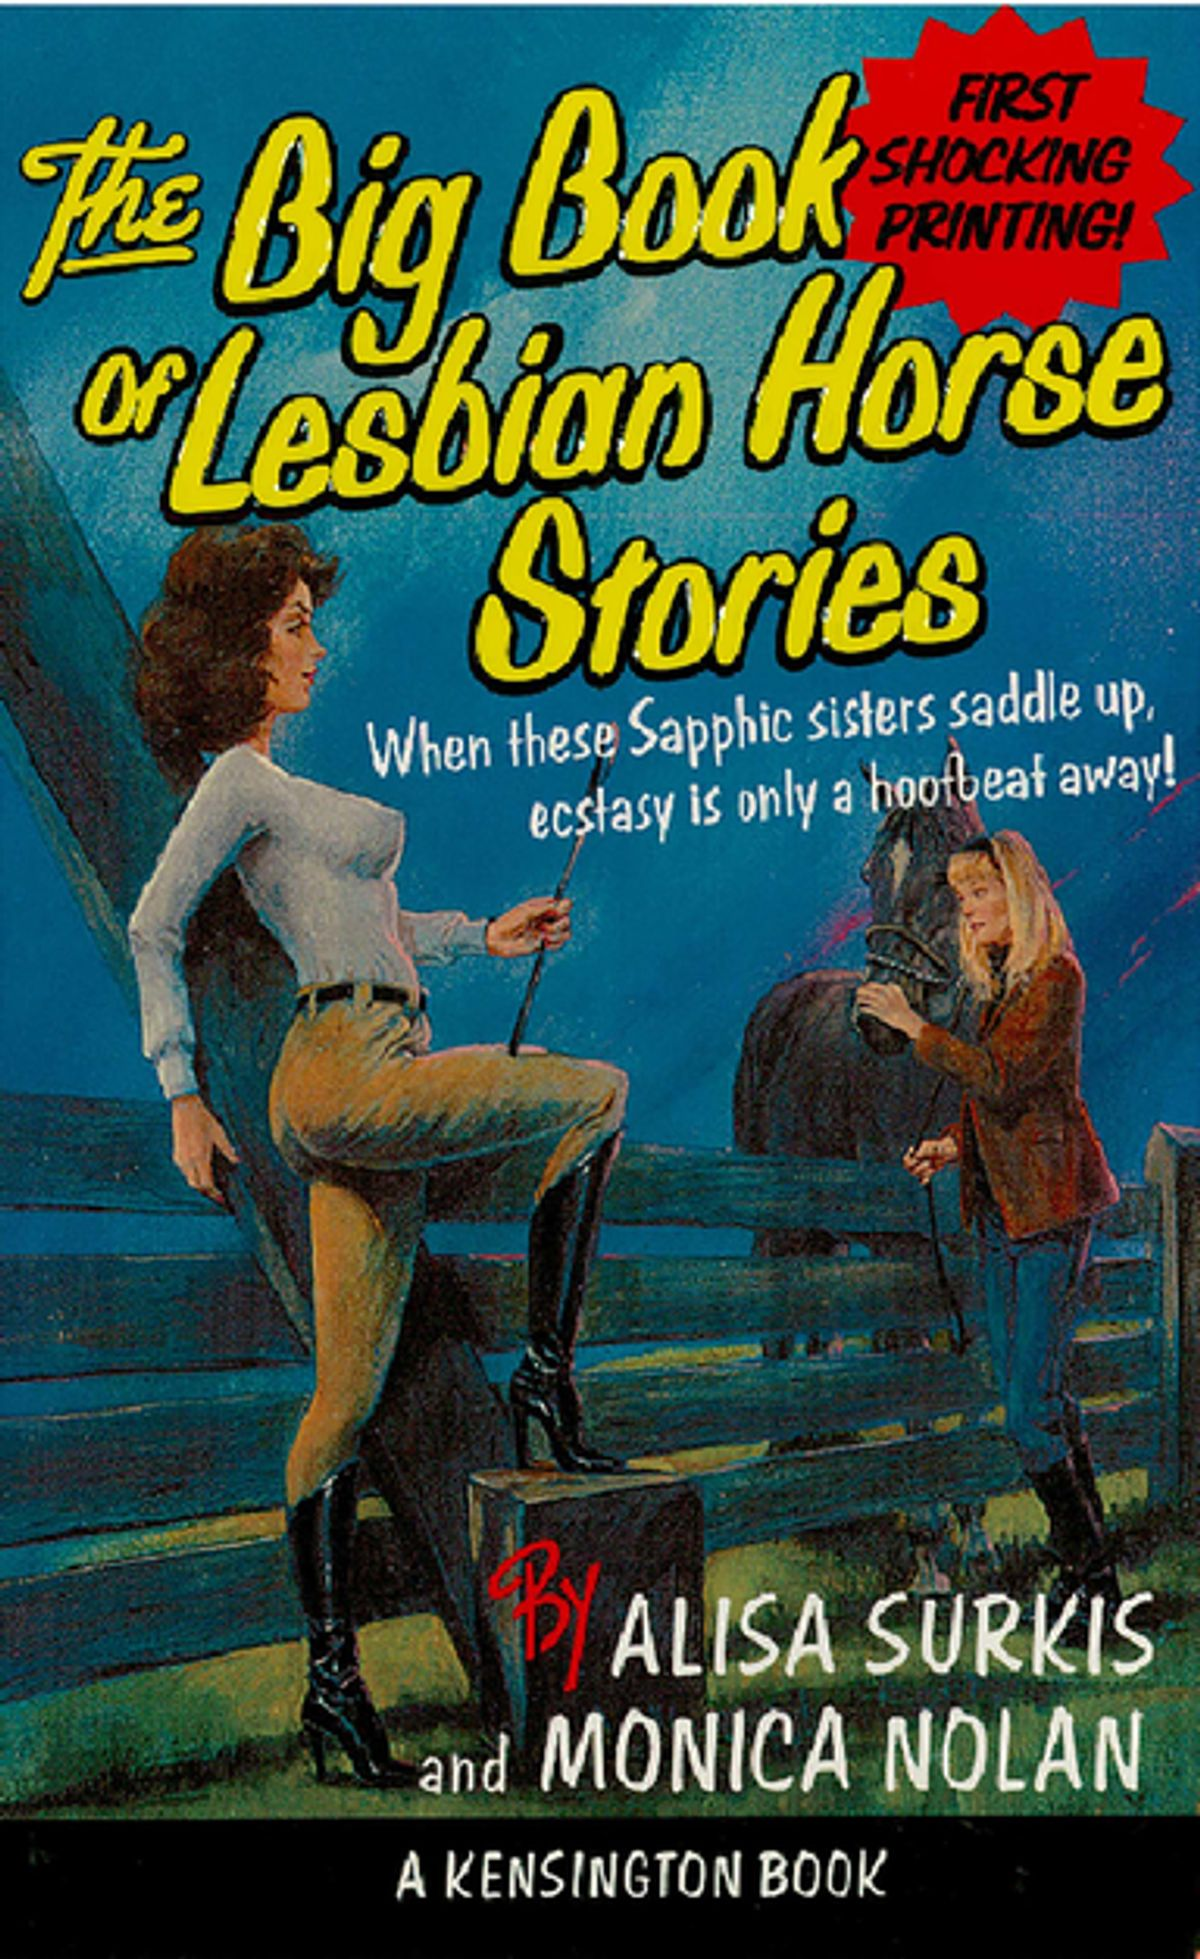 'The Big Book of Lesbian Horse Stories' by Alisa Surkis